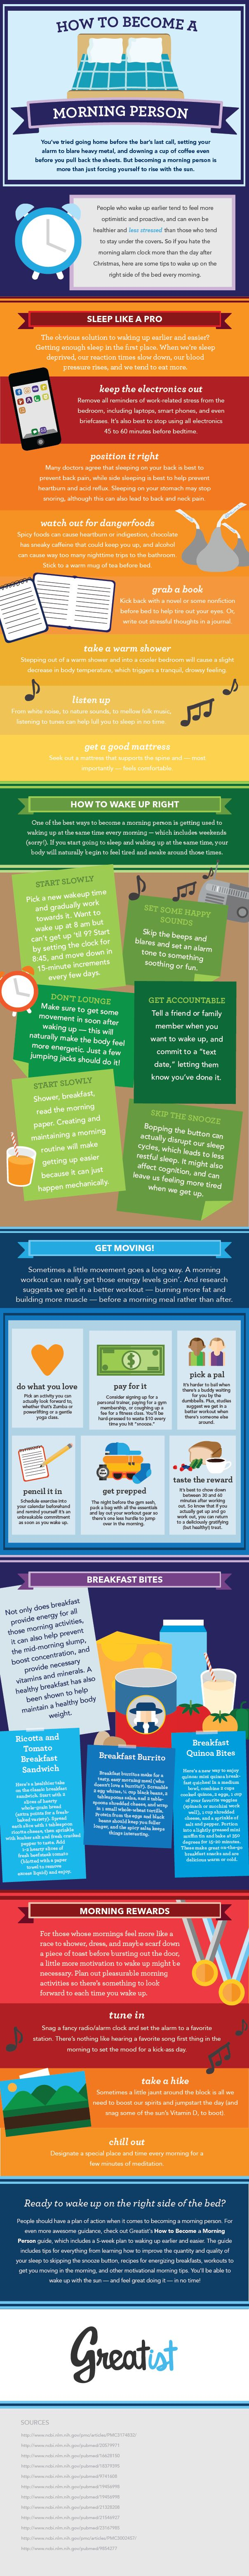 Get your day started right with these fantastic tips for becoming a morning person and increasing your energy!